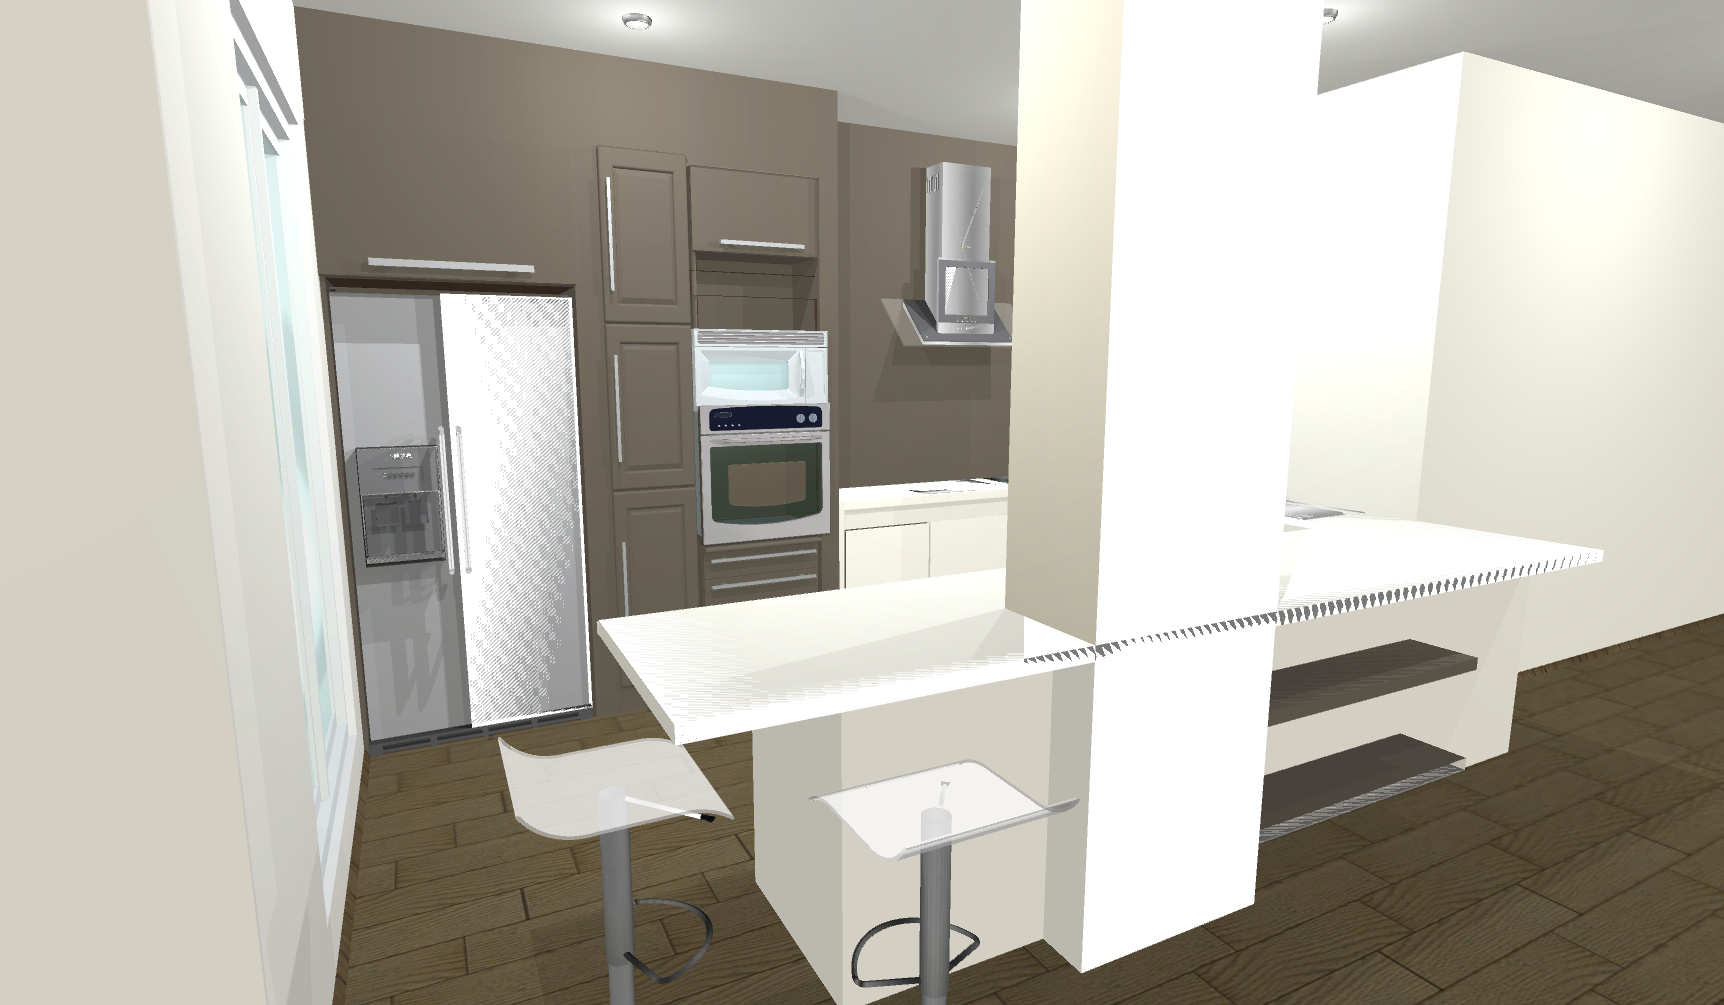 21 avant projet cuisine home id for Projet cuisine